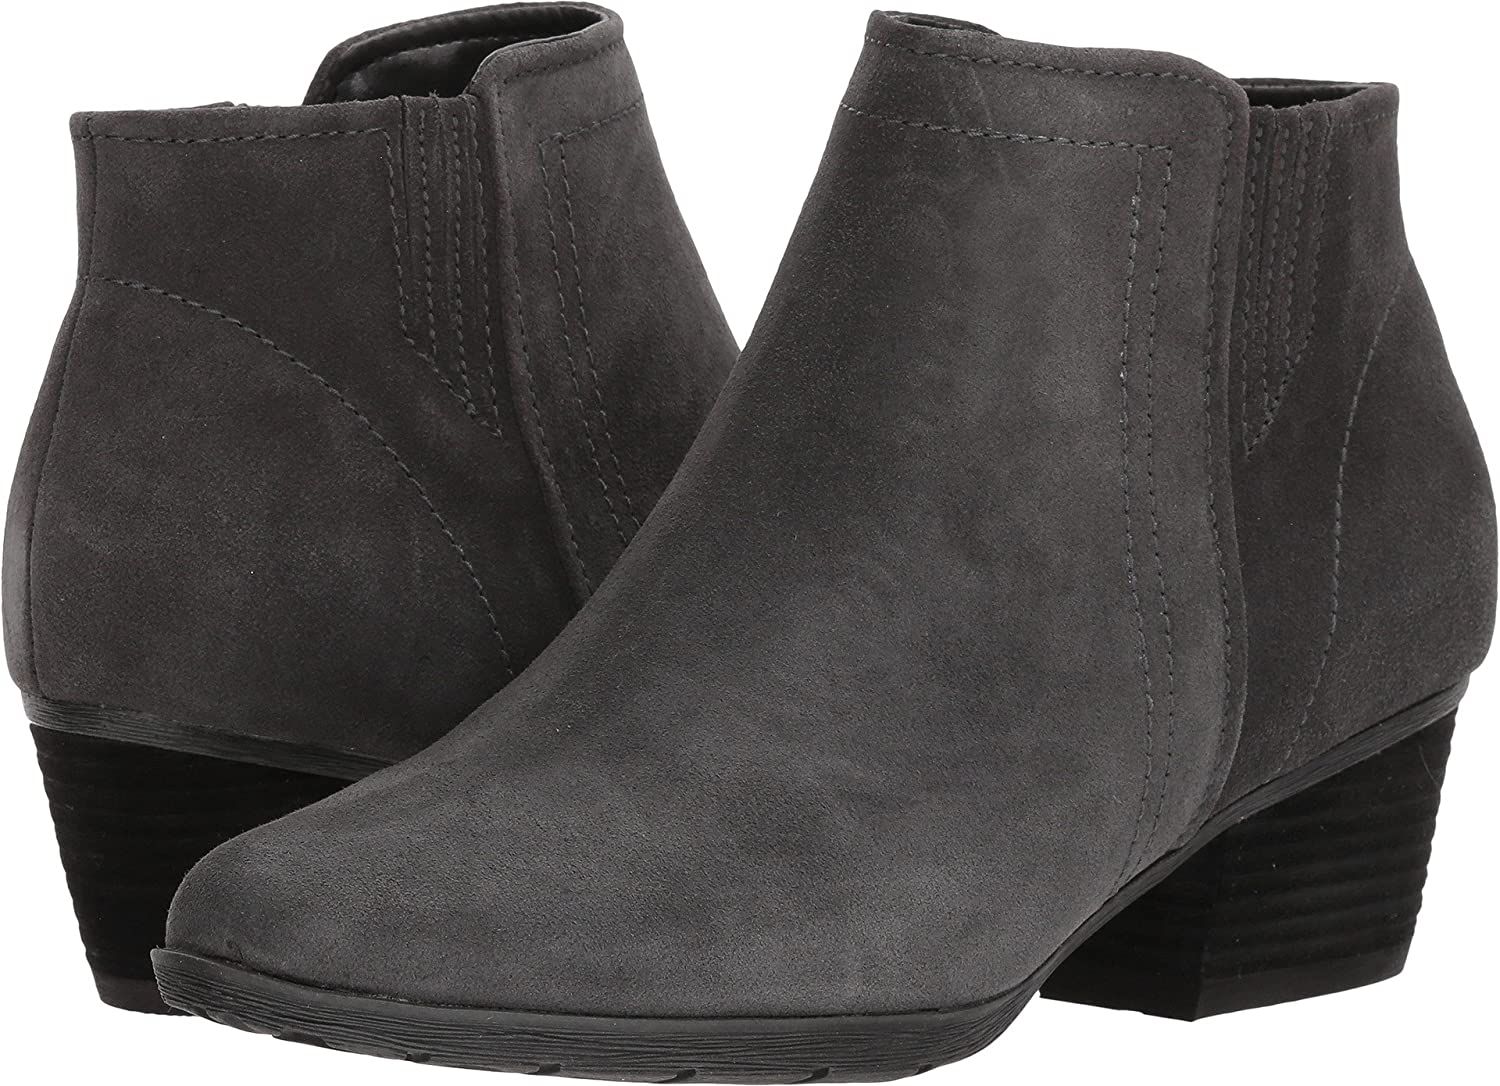 Blondo Womens Valli Waterproof Bootie B0778V3KNX 6 B(M) US|Dark Grey Suede